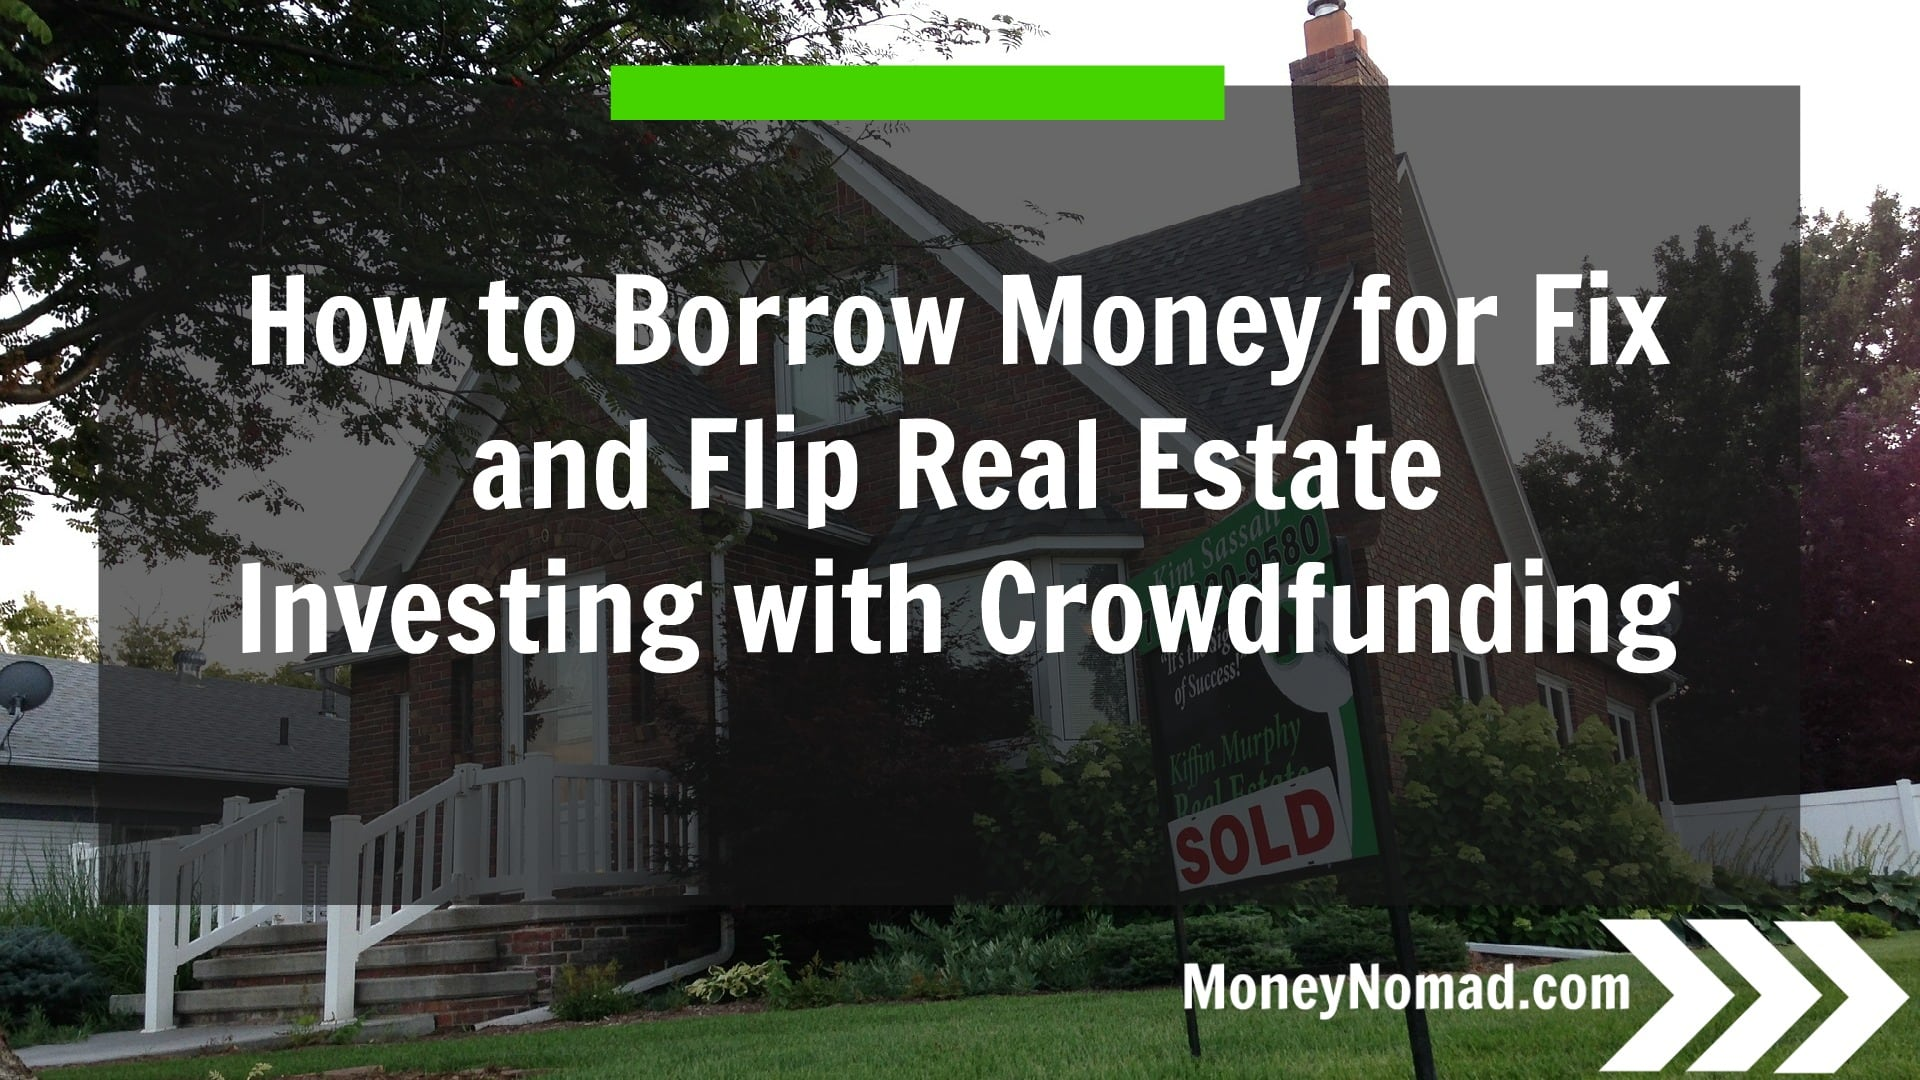 Crowdfunding Platforms How To Borrow Money For Fix And Flip Real Estate Investing